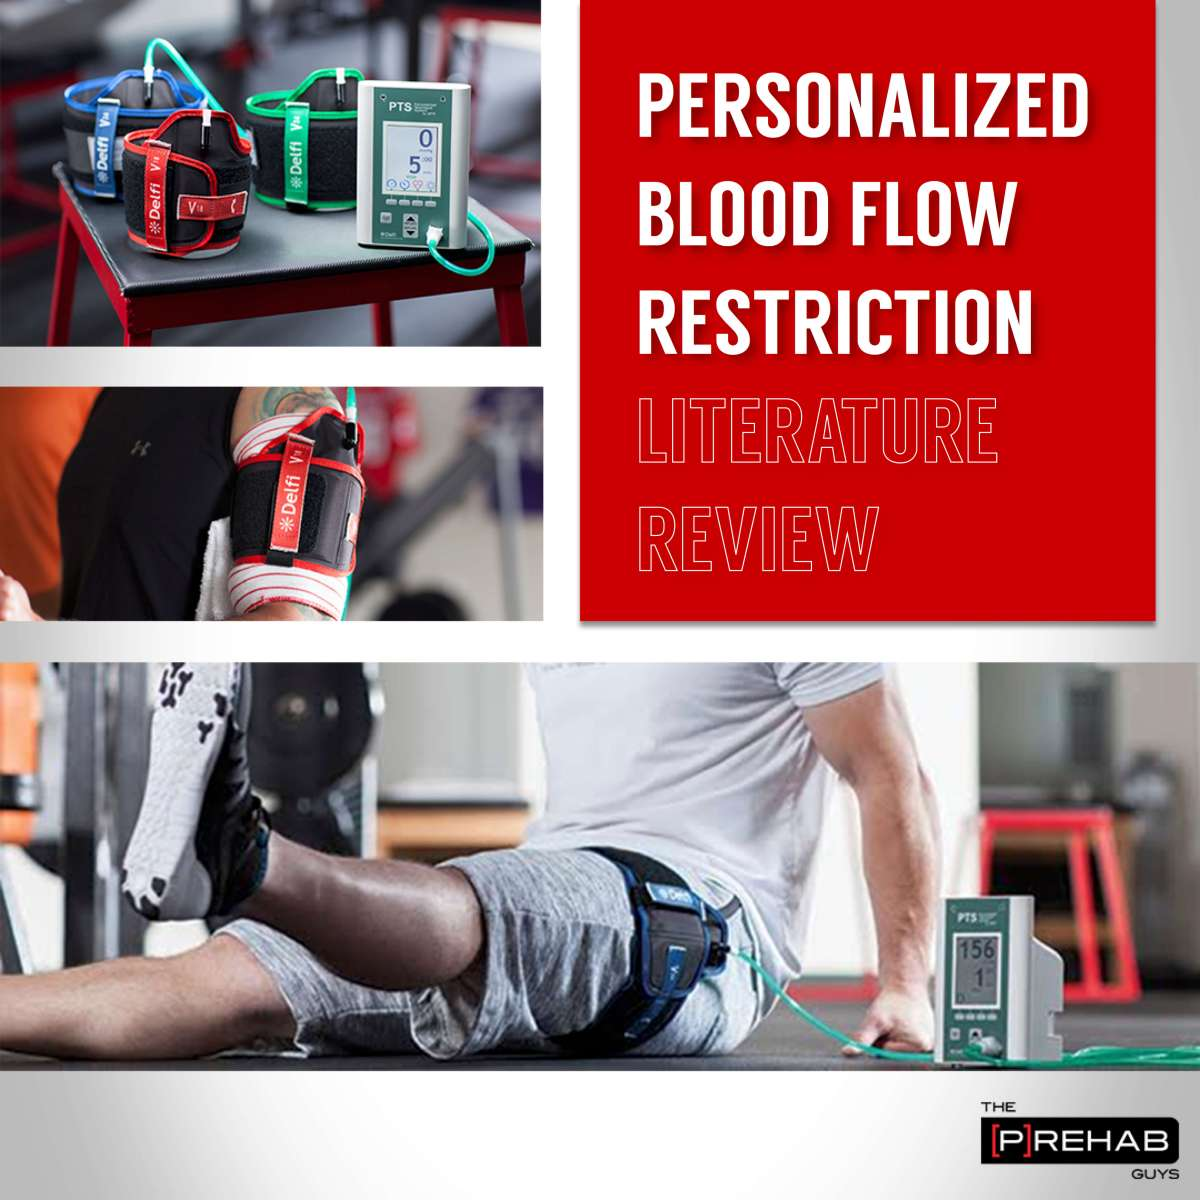 Personalized Blood Flow Restriction Training Literature Review